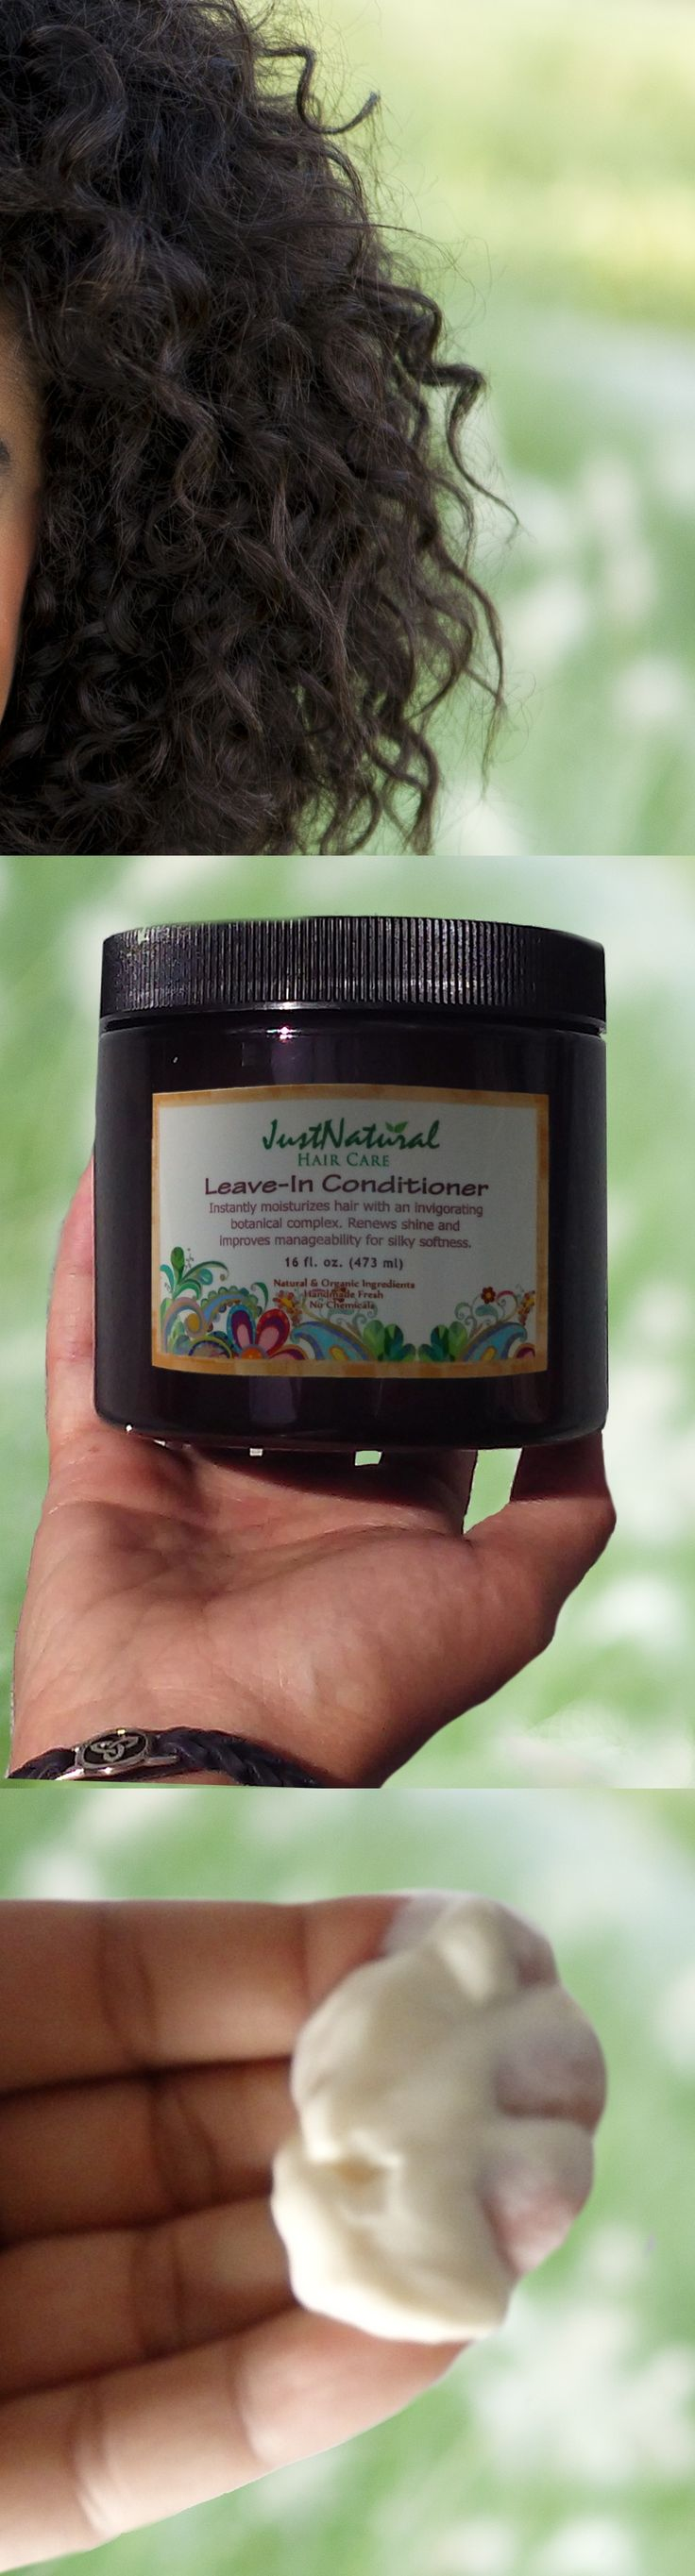 This is the best natural leave in conditioner! This jar lasted me months! It helps detangle and tame my thick curly hair! My hair is so smooth and silky when I go to the salon to straighten it. My stylist asked if I have been using a keratin treatment. I didn't think he believed me when I said no, just natural and organic hair care products, lol. The scent is very light so I add grapefruit oil. Thanks!